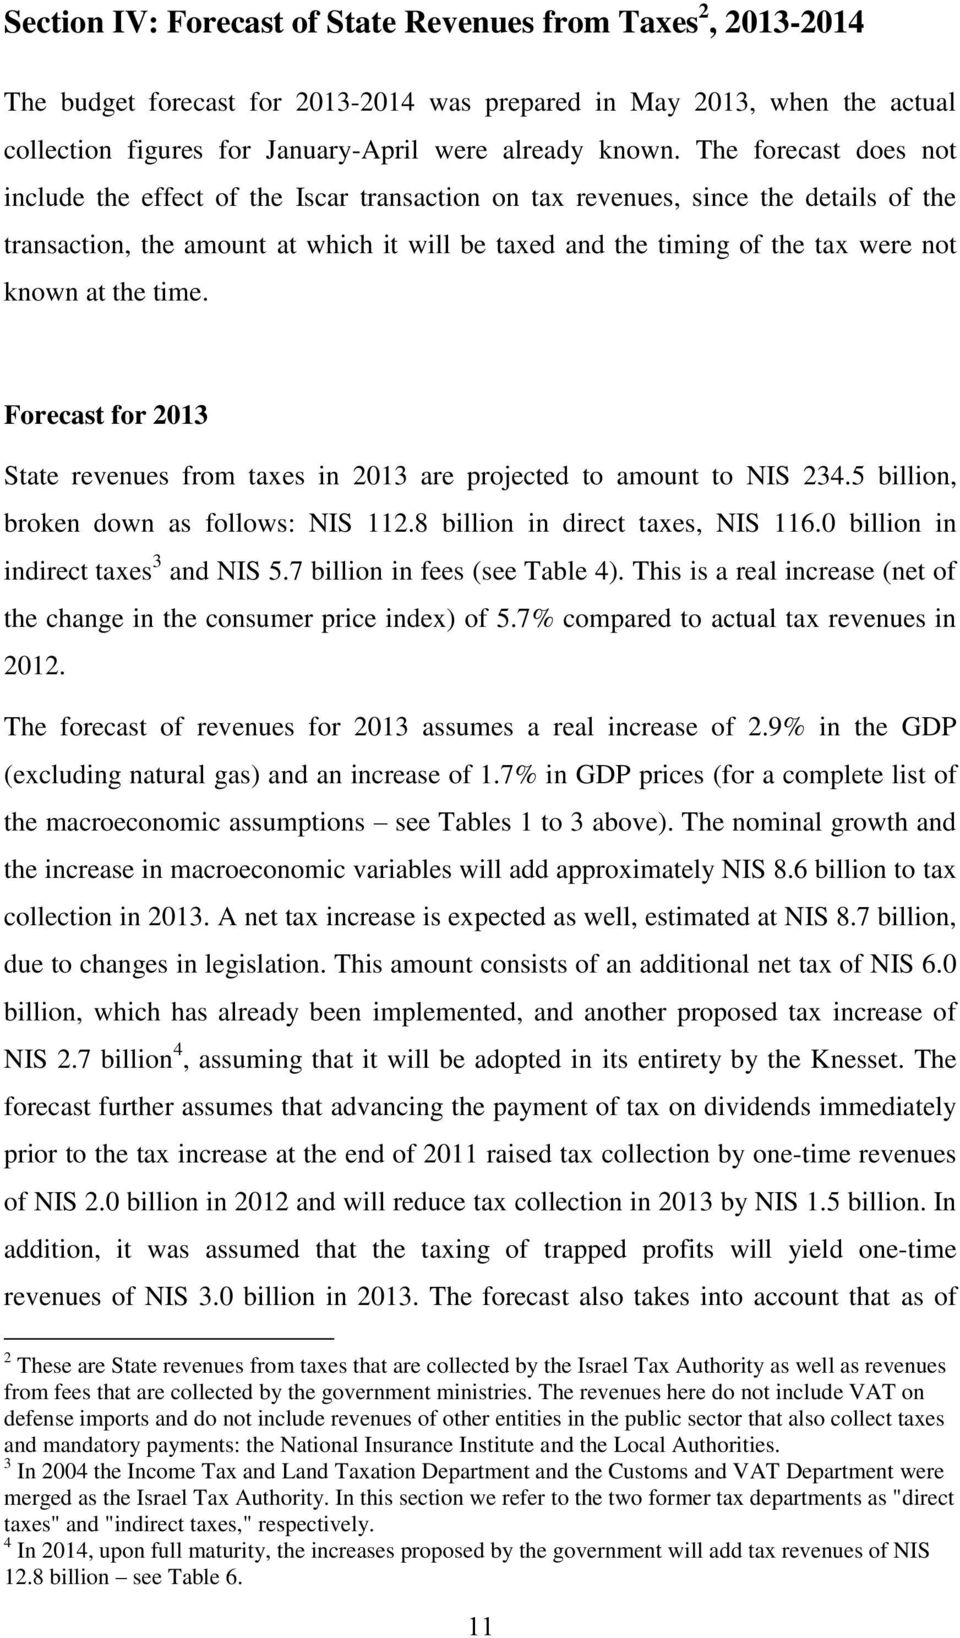 at the time. Forecast for 2013 State revenues from taxes in 2013 are projected to amount to NIS 234.5 billion, broken down as follows: NIS 112.8 billion in direct taxes, NIS 116.